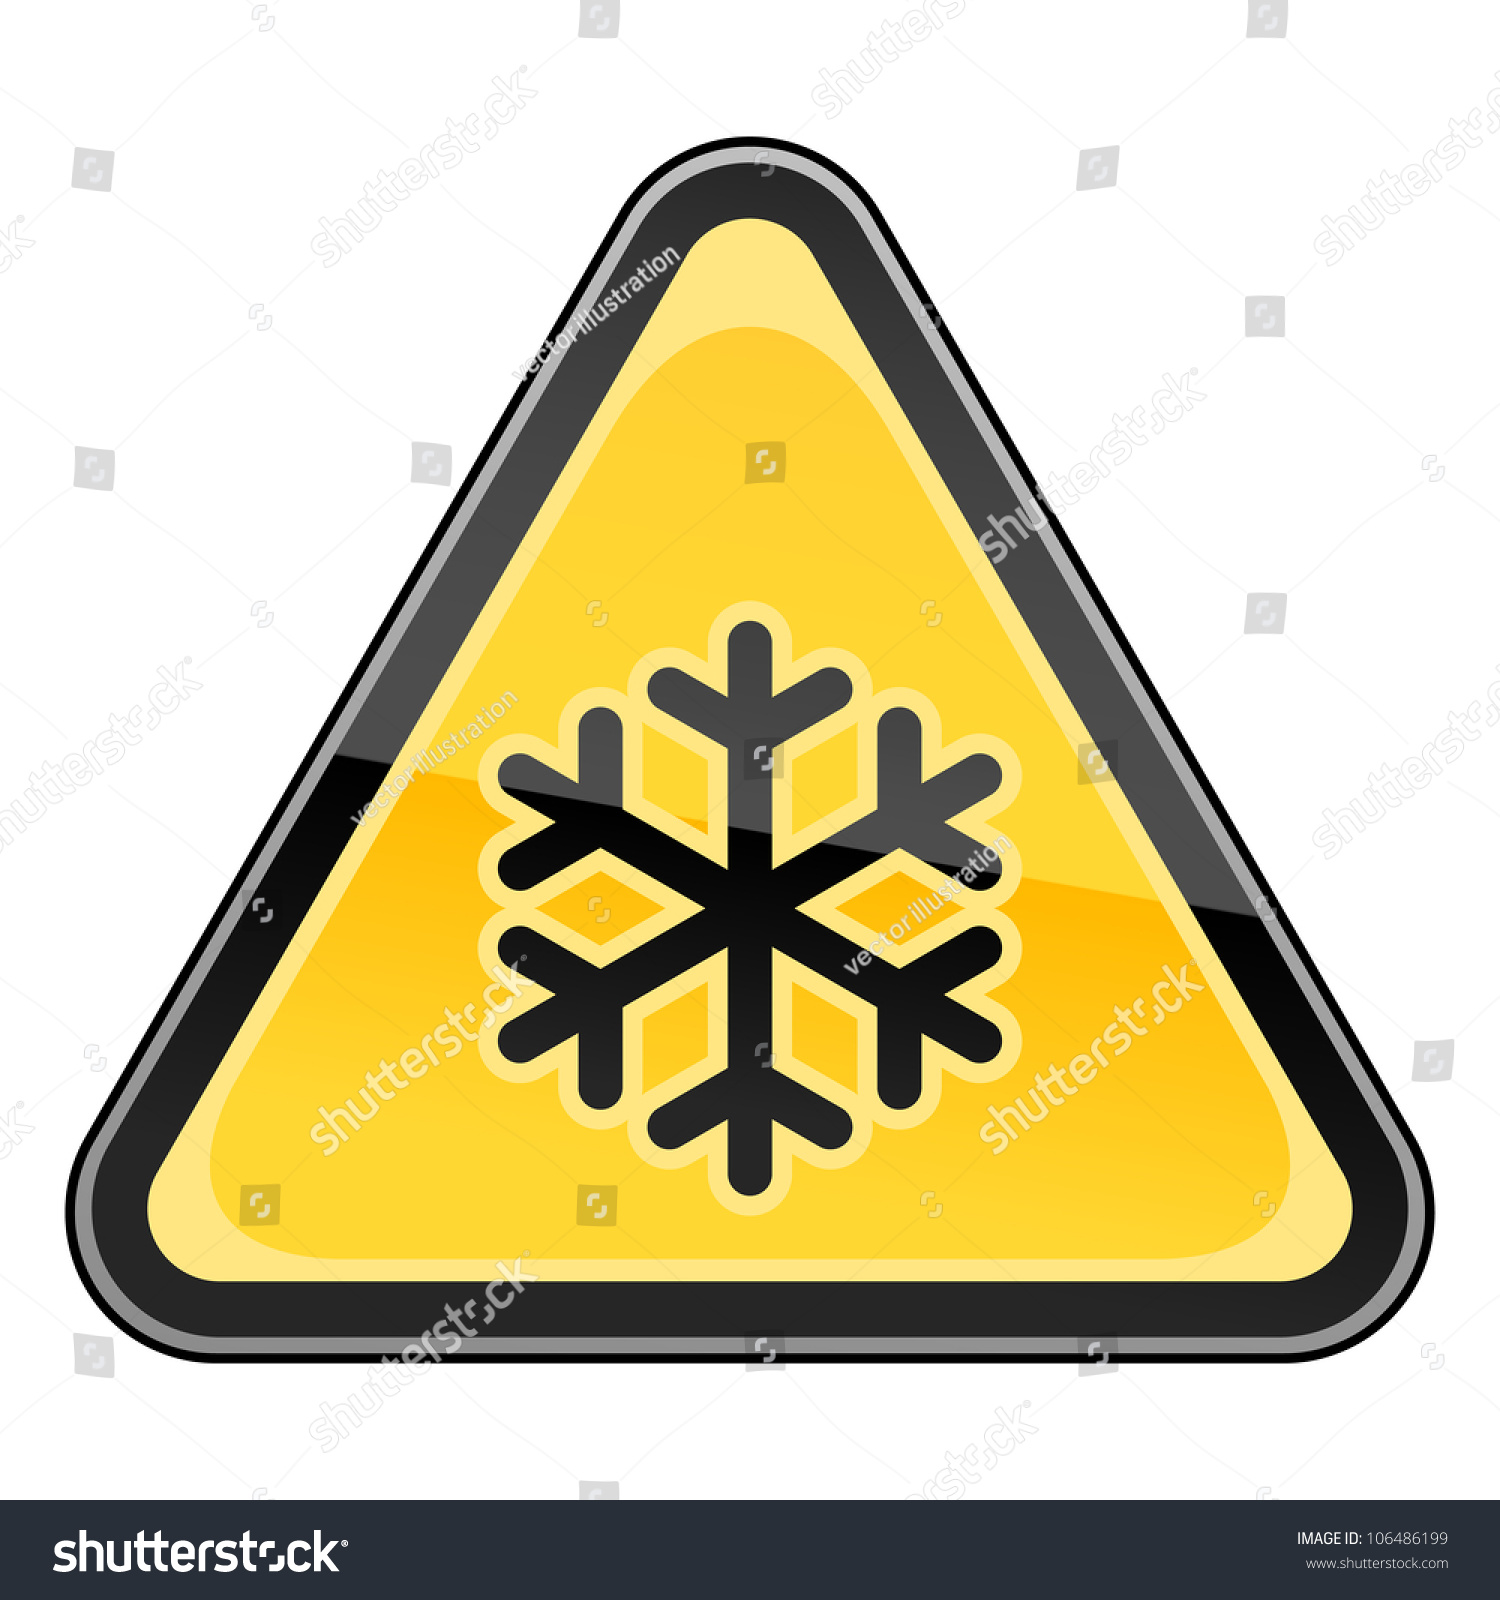 Yellow hazard sign black snowflake low stock vector 106486199 yellow hazard sign with black snowflake low temperature symbol triangular glossy shape on white background buycottarizona Image collections